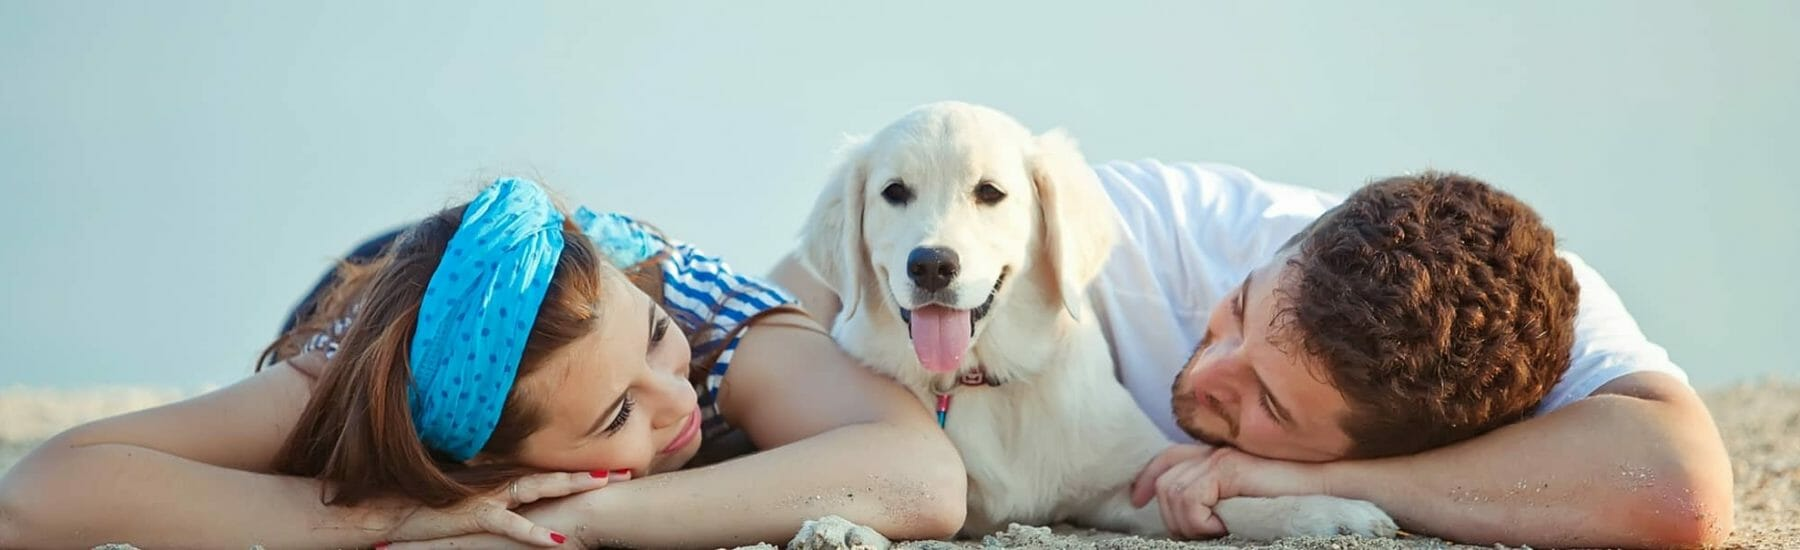 Dog laying on beach between owners